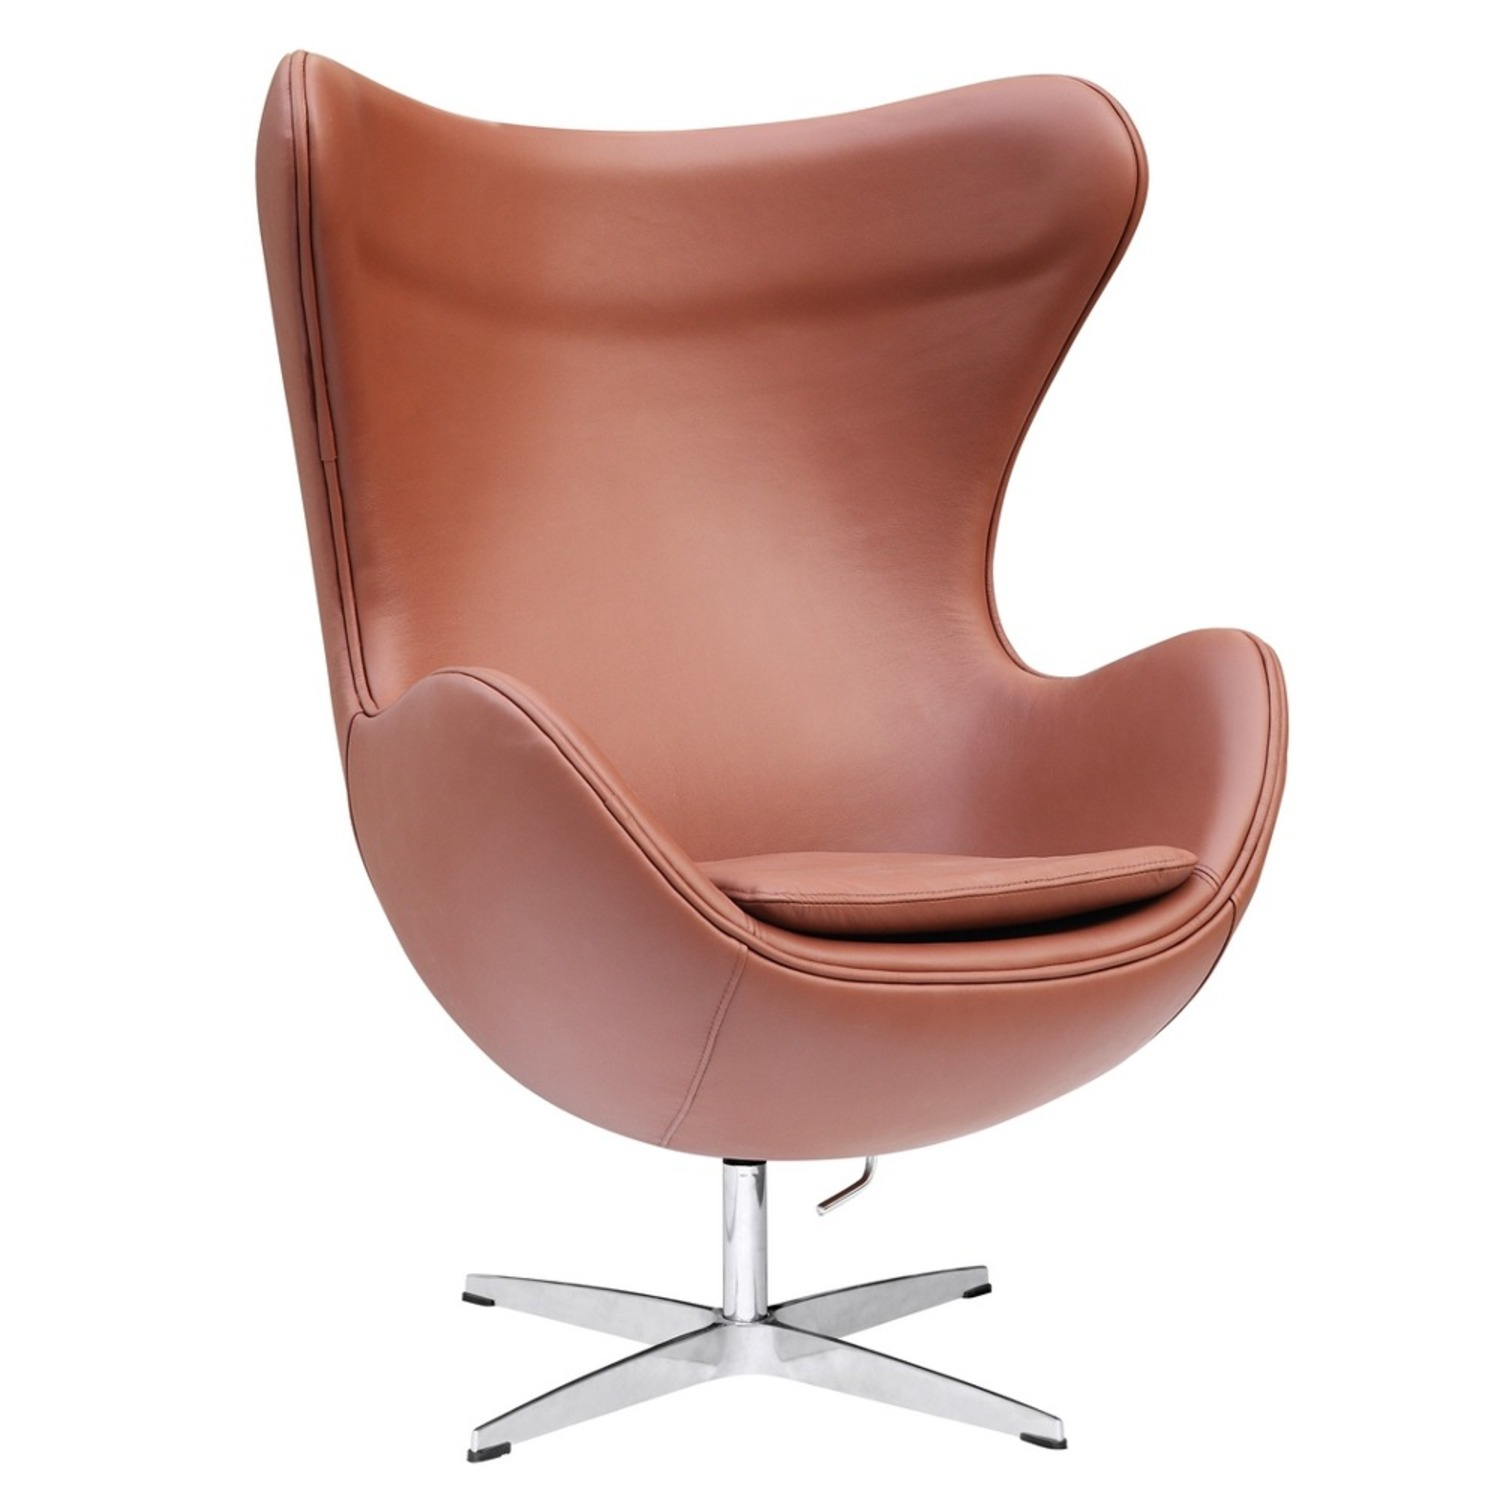 Inner Chair In Light Brown Leather - image-0